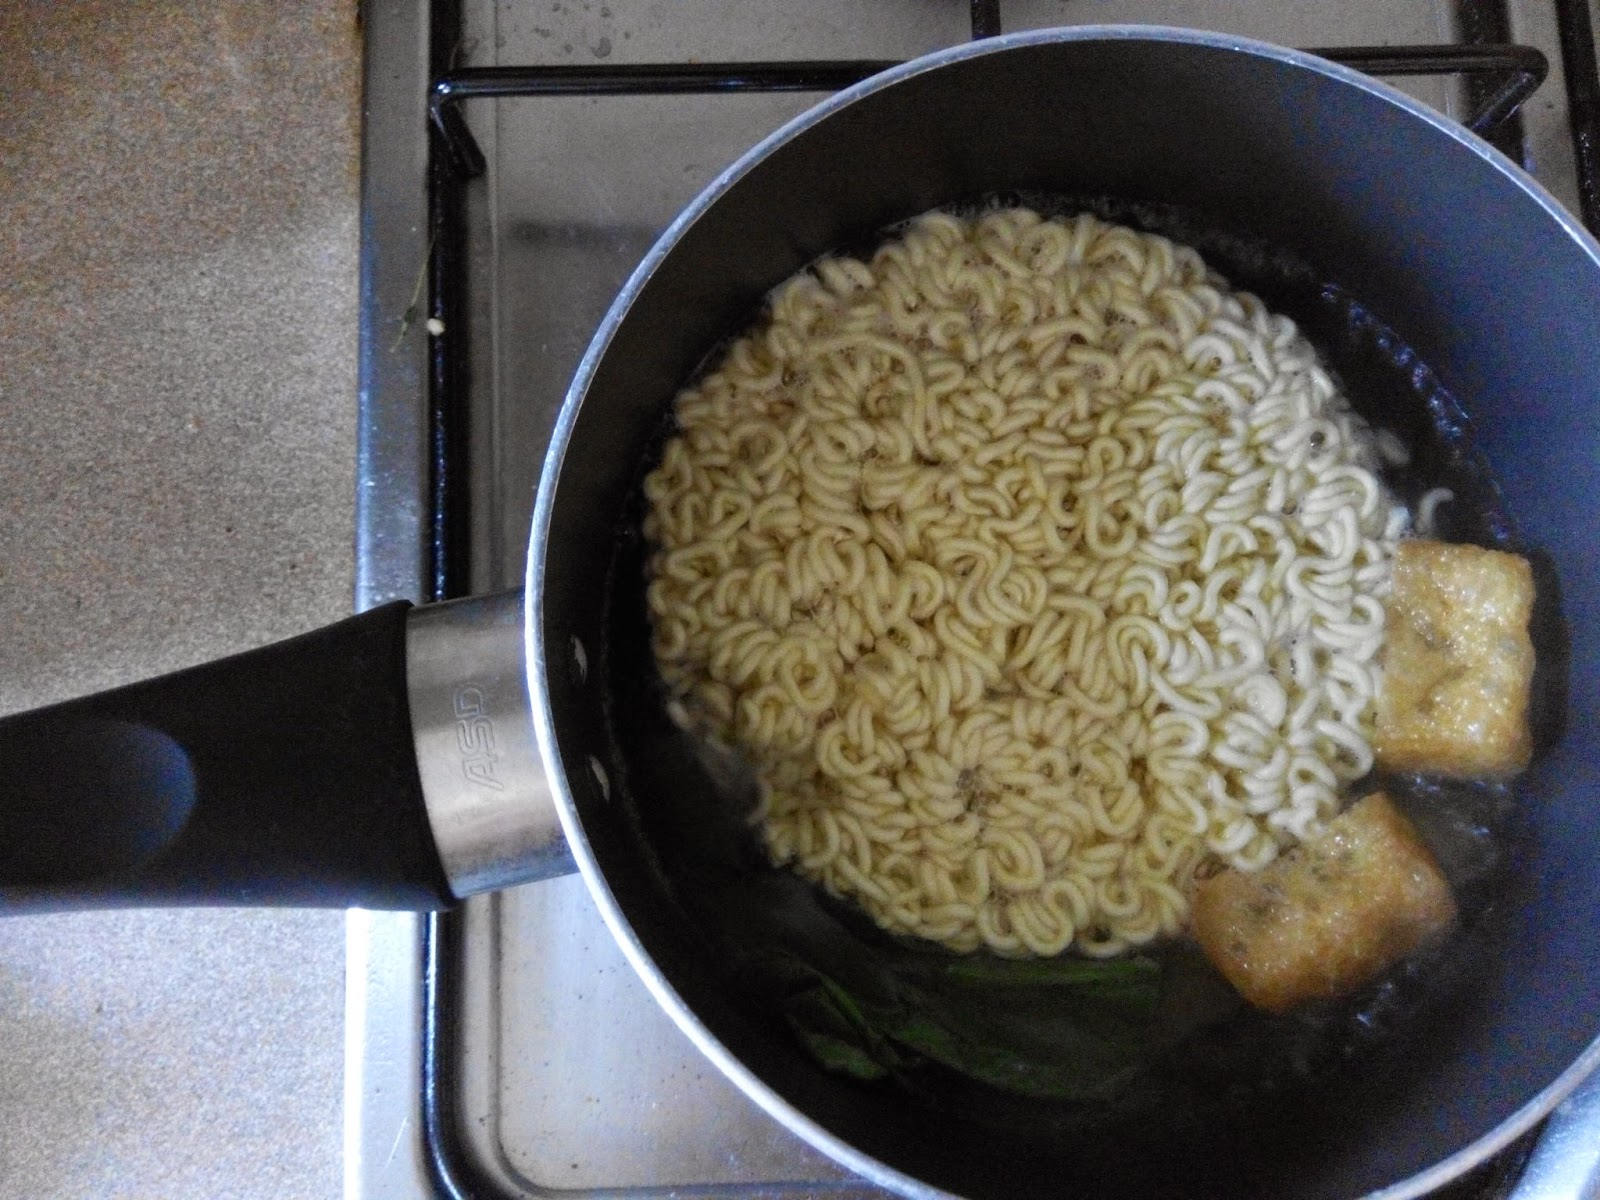 Round instant noodle in a pot